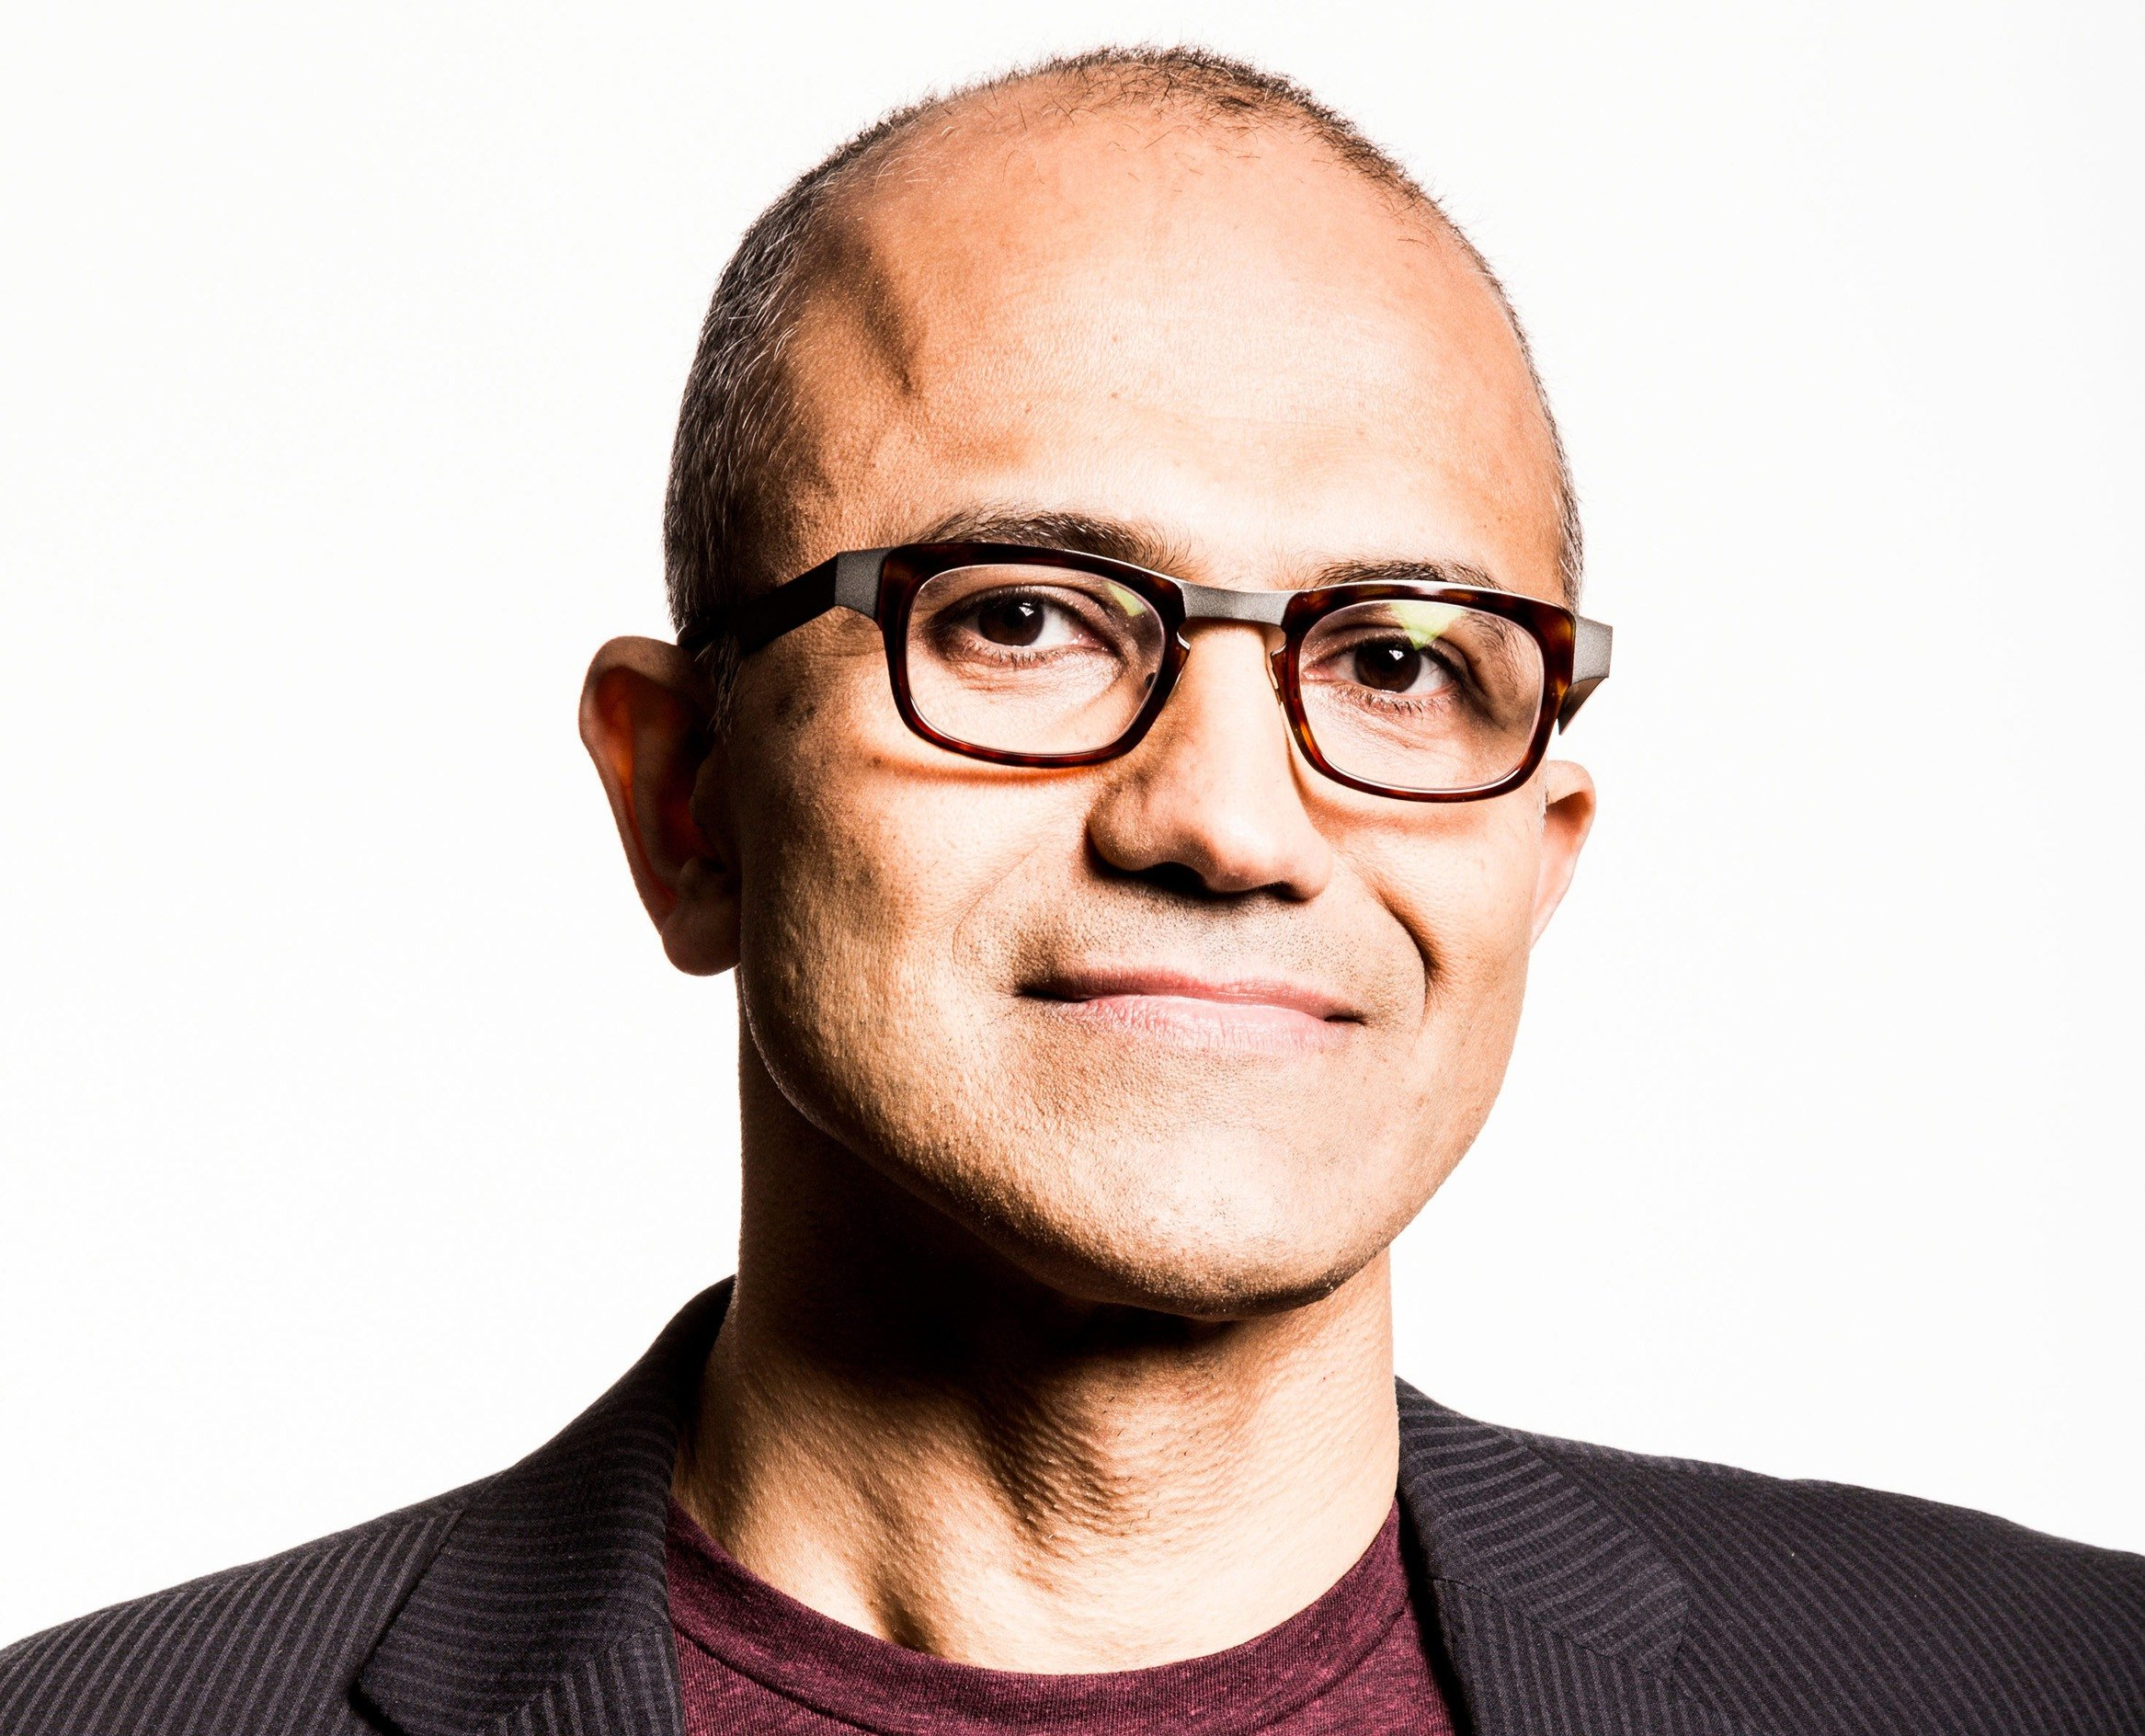 Satya Nadella, executive vice president of Microsoft's Cloud and Enterprise group, Feb. 4, 2014.